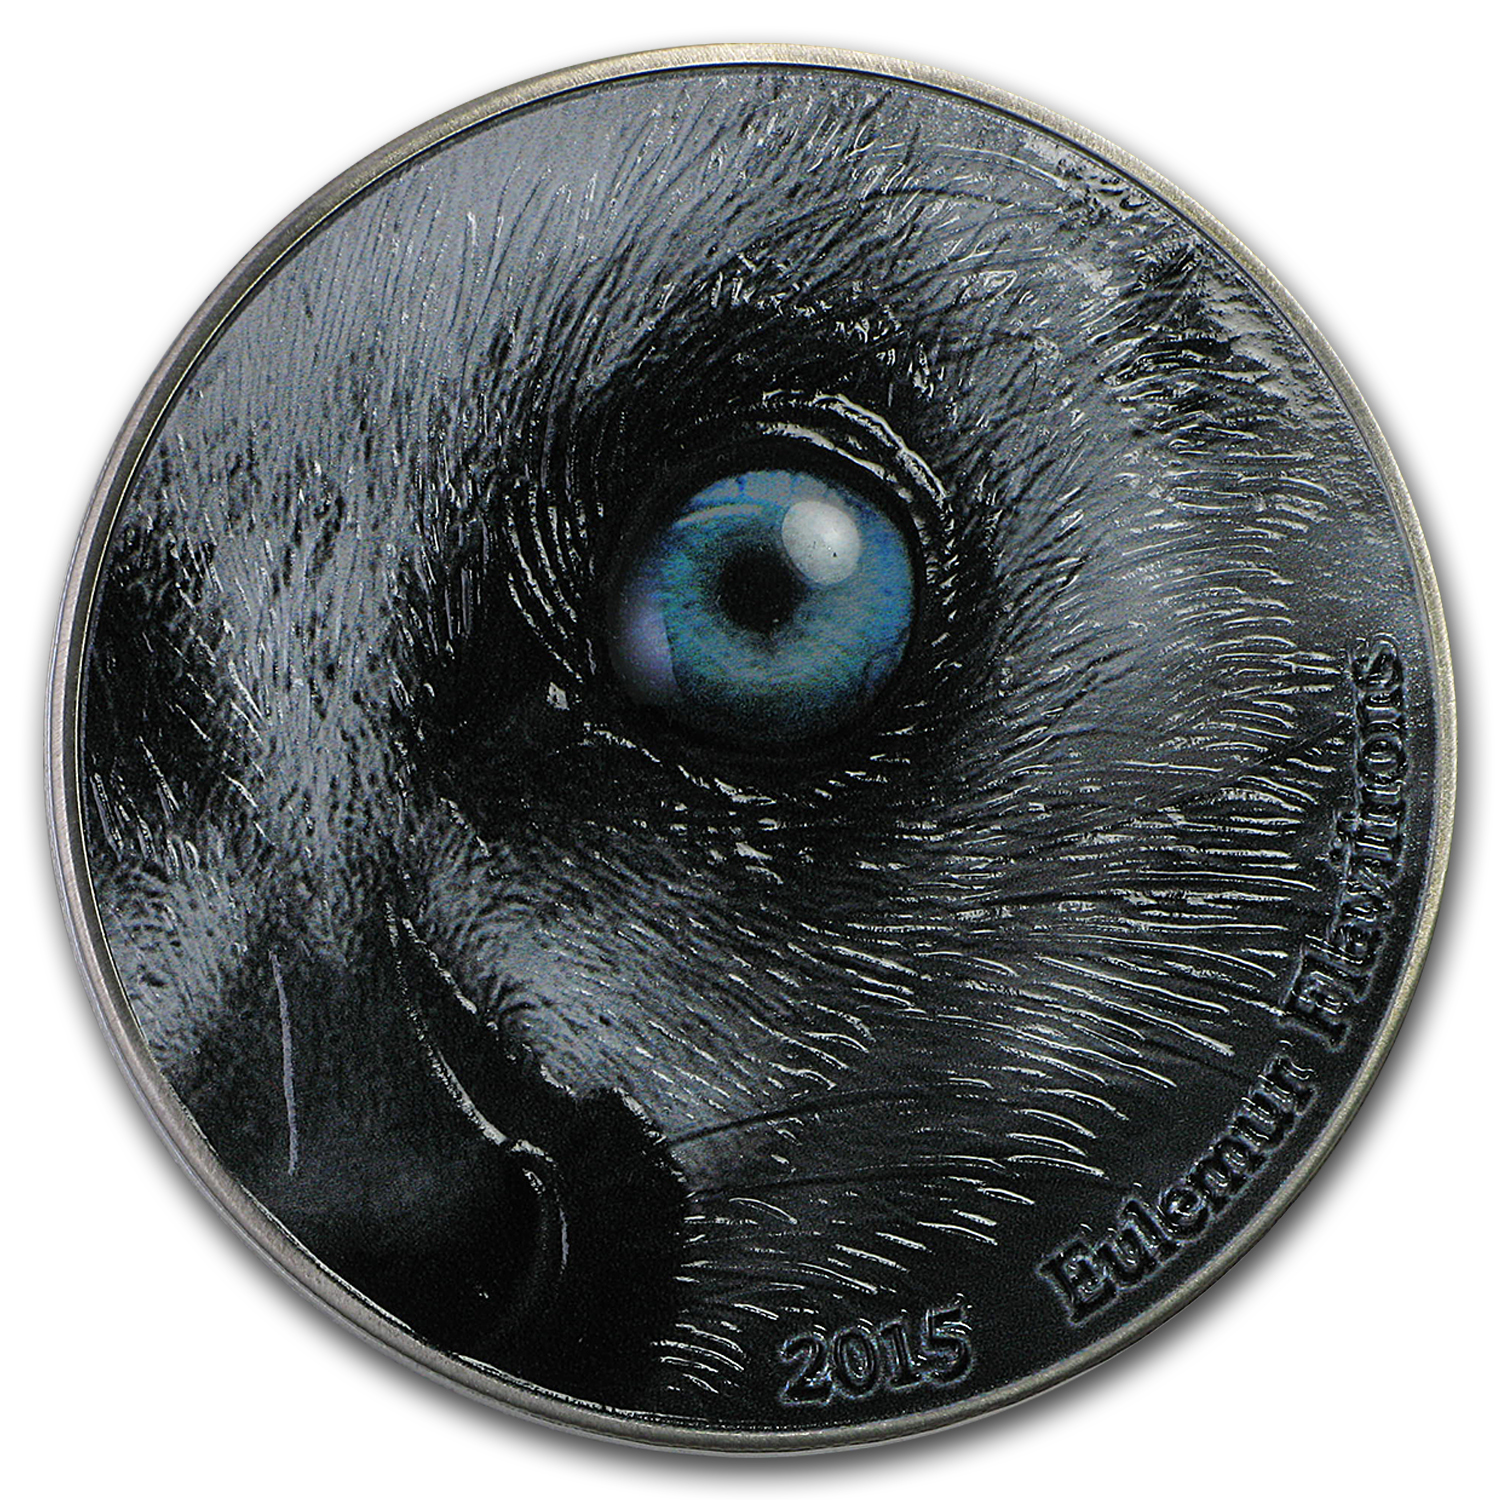 2015 Congo 2 oz Silver Nature's Eyes Black Lemur